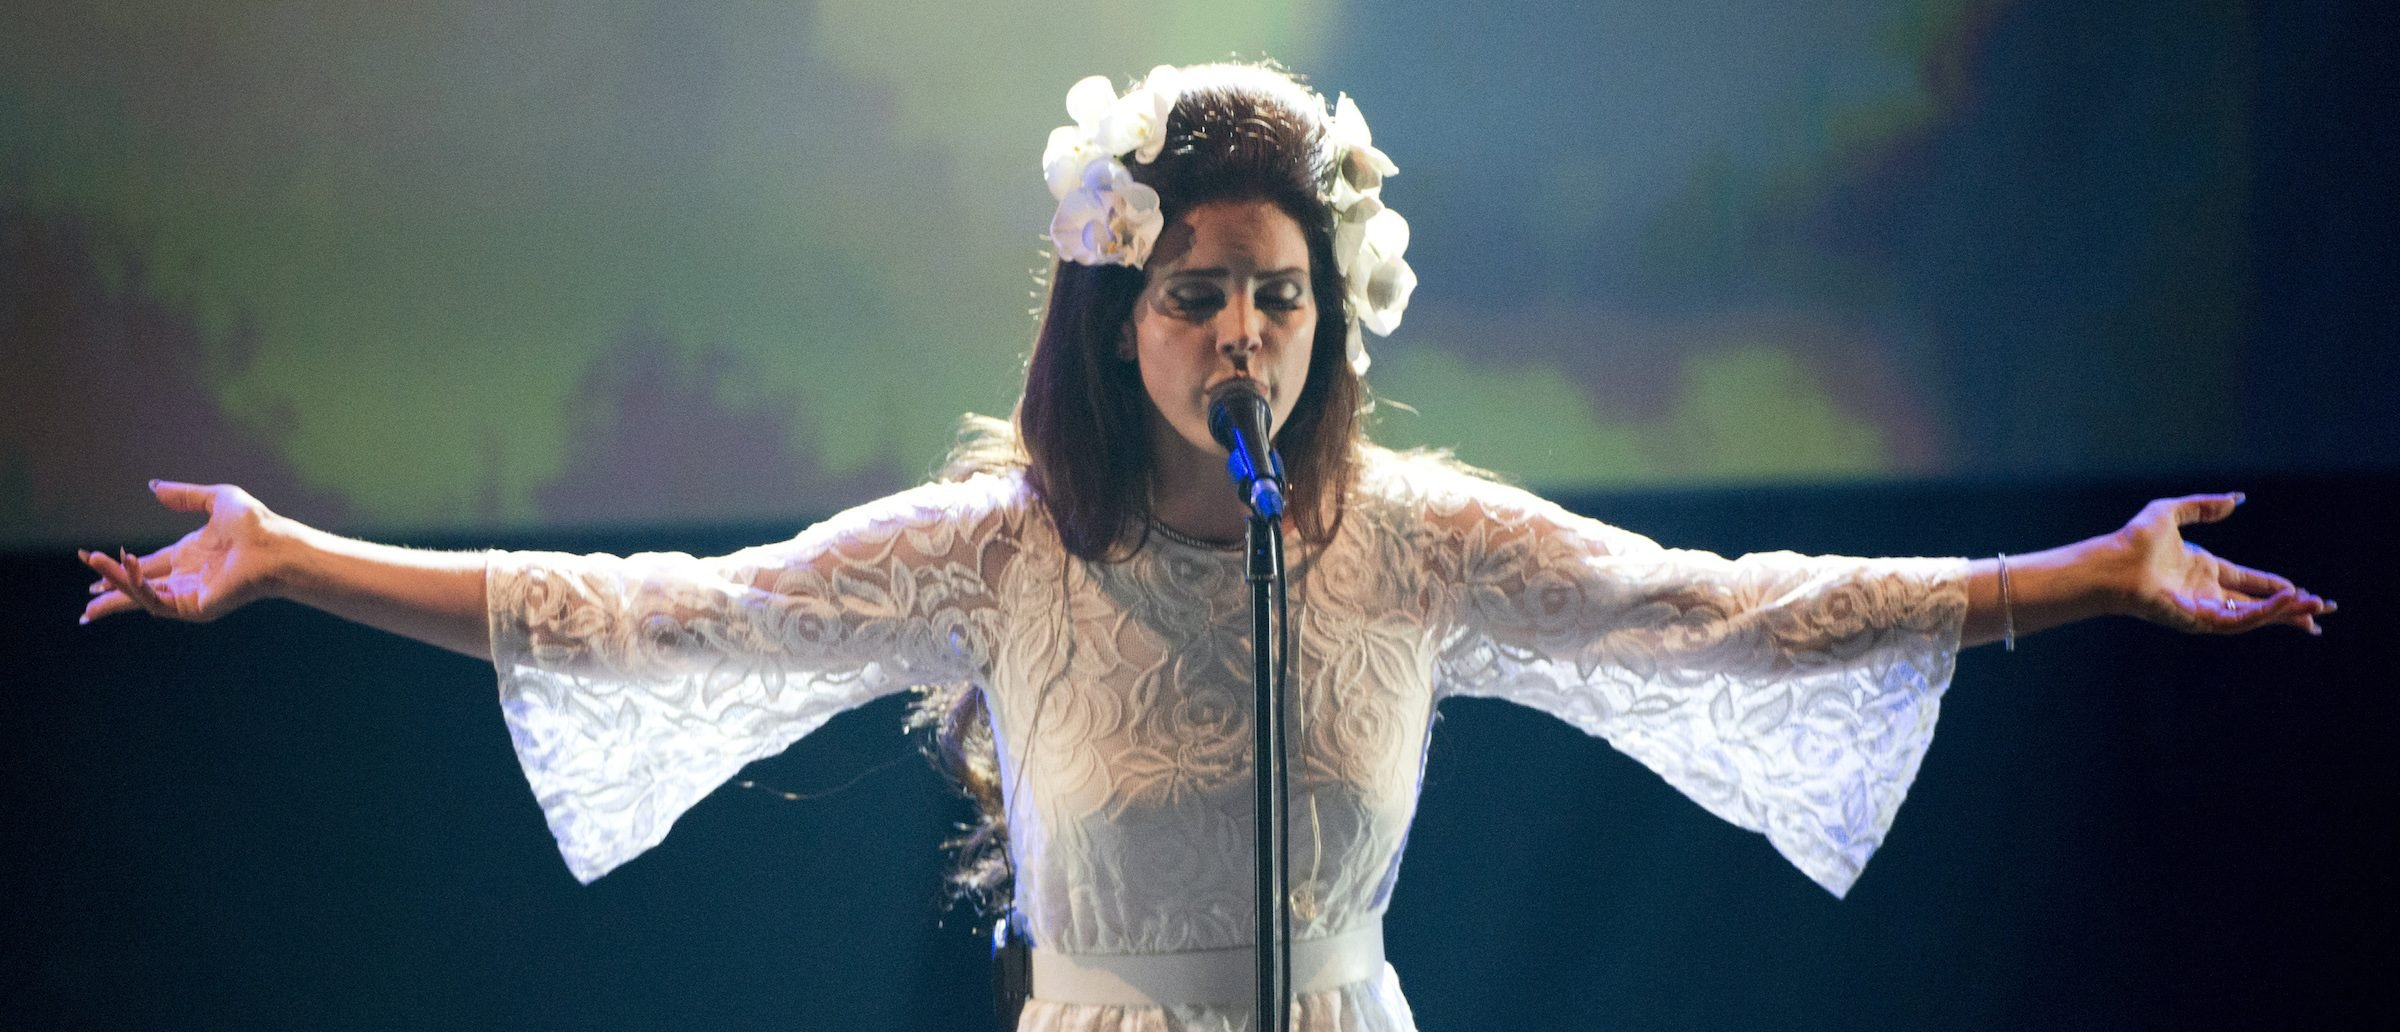 Lana Del Rey Pulls American Flag From Tour Because Of Trump: 'I Feel Less Safe'